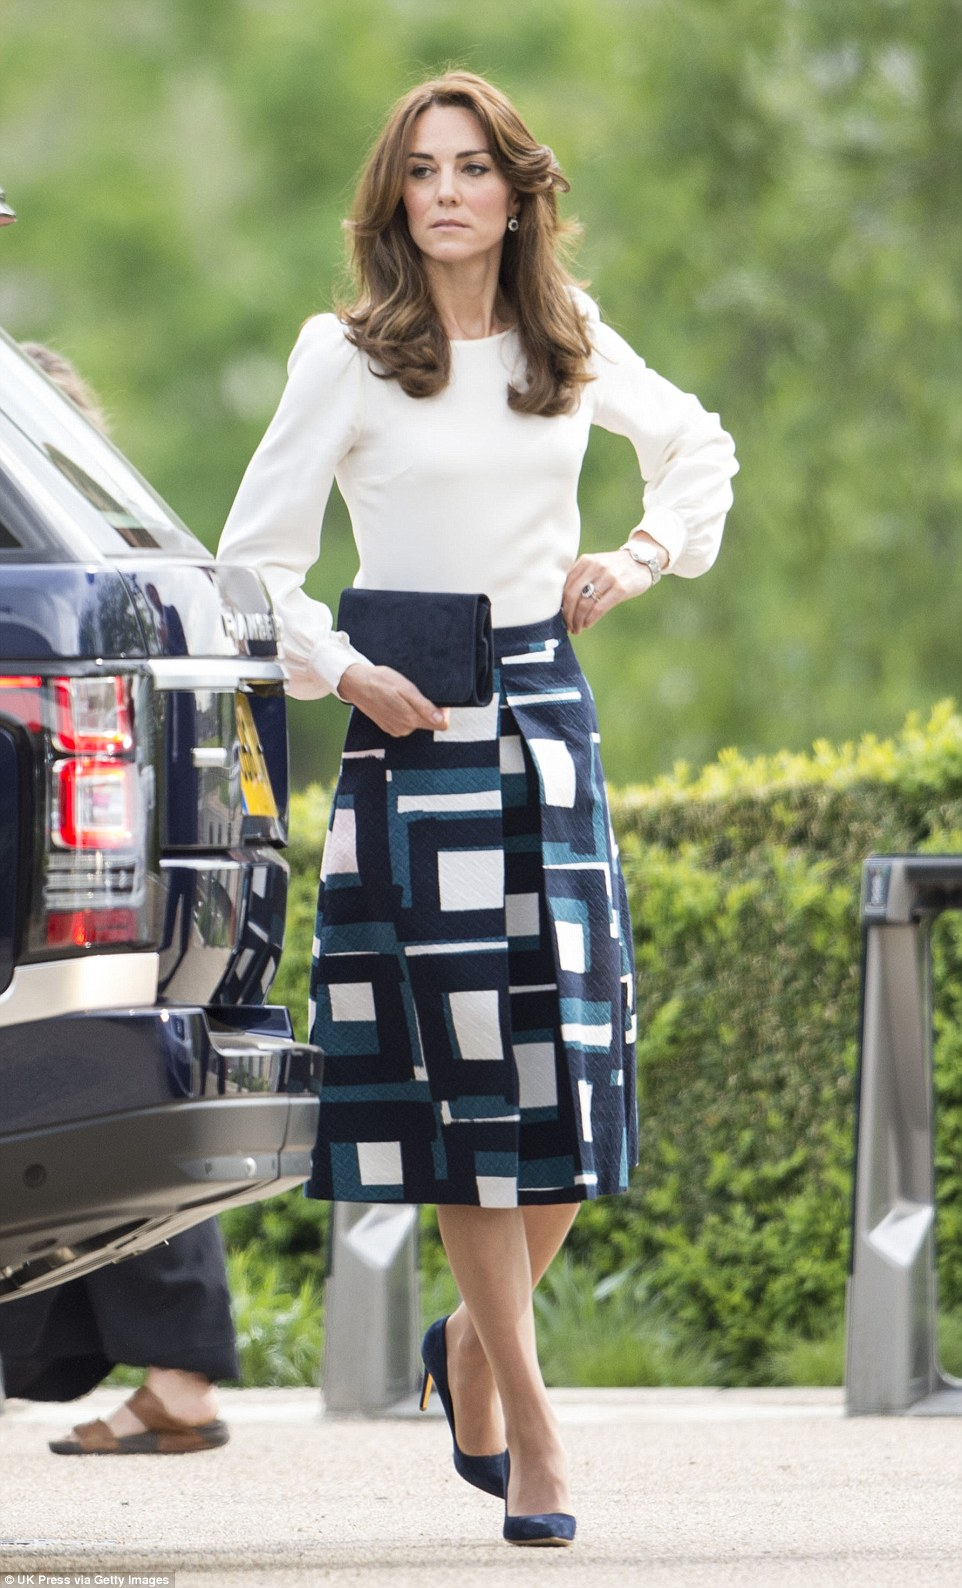 Catherine Duchess of Cambridge Photo C GETTY IMAGES 0797